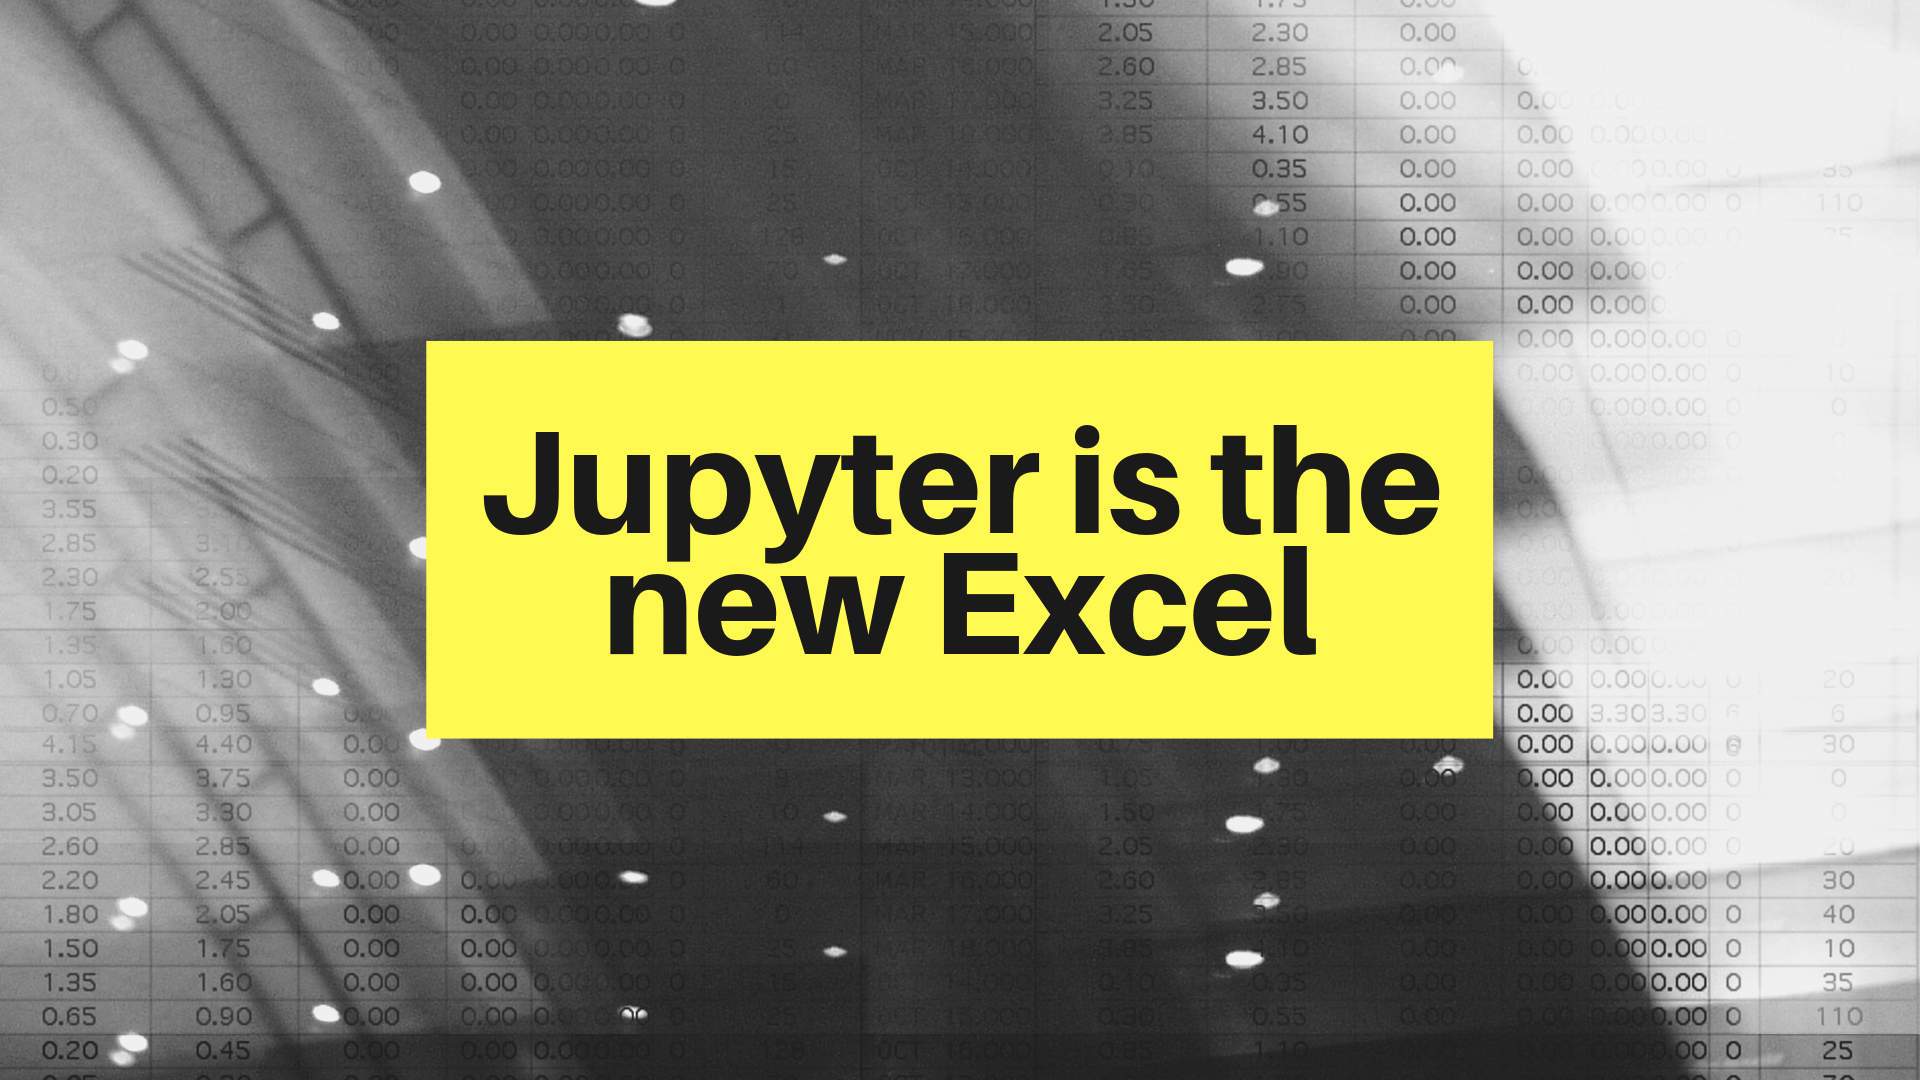 Jupyter is the new Excel